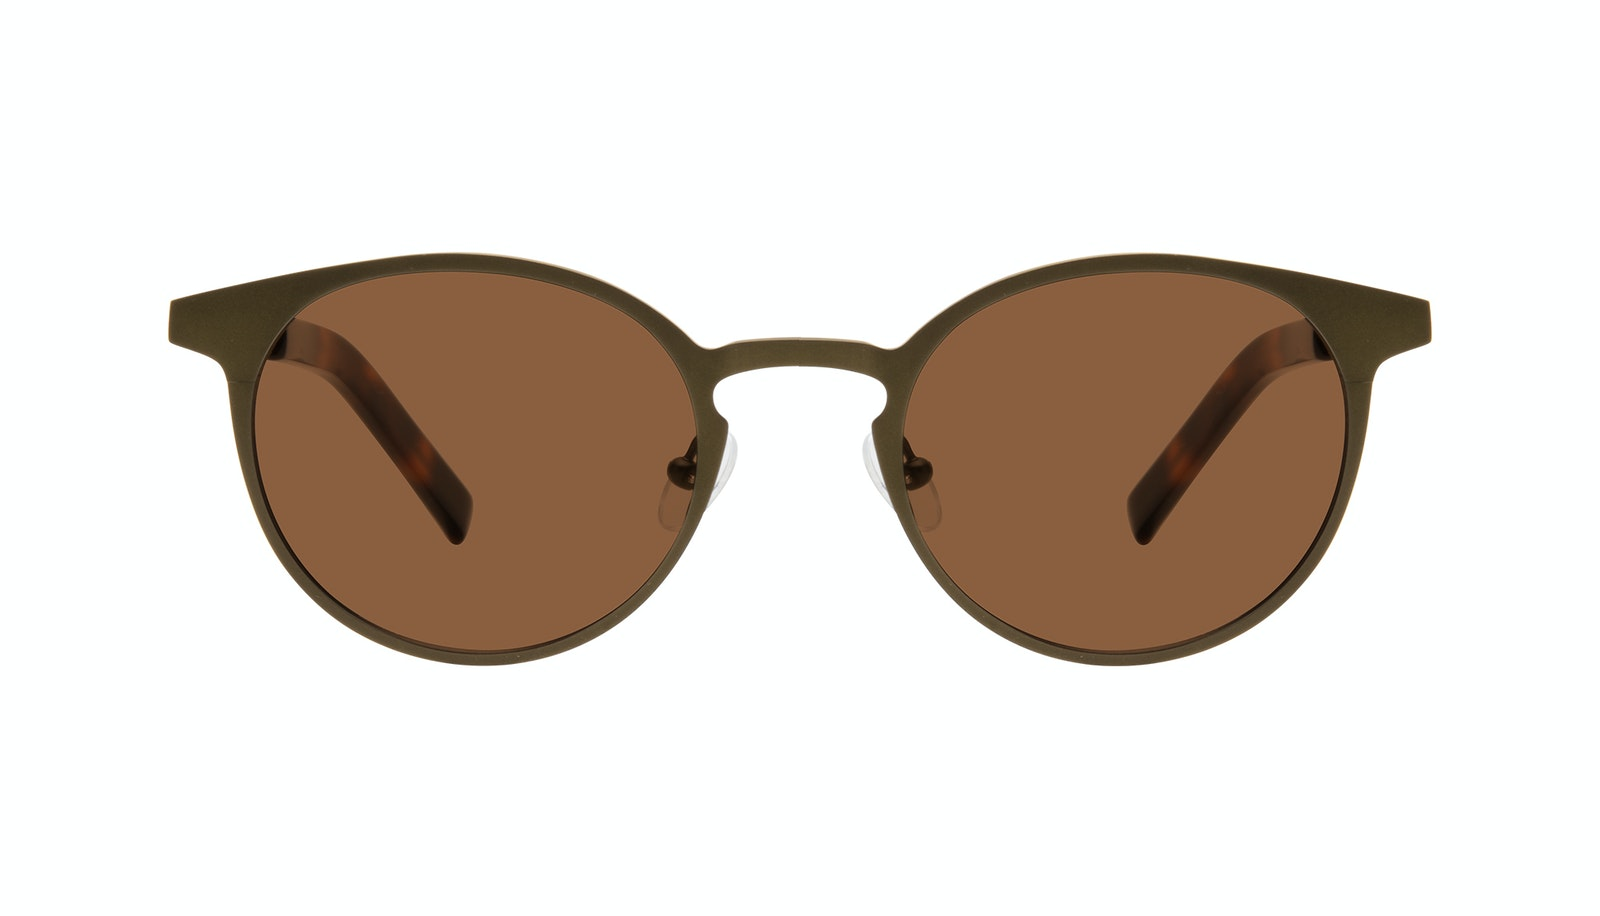 Affordable Fashion Glasses Round Sunglasses Men Cut Khaki